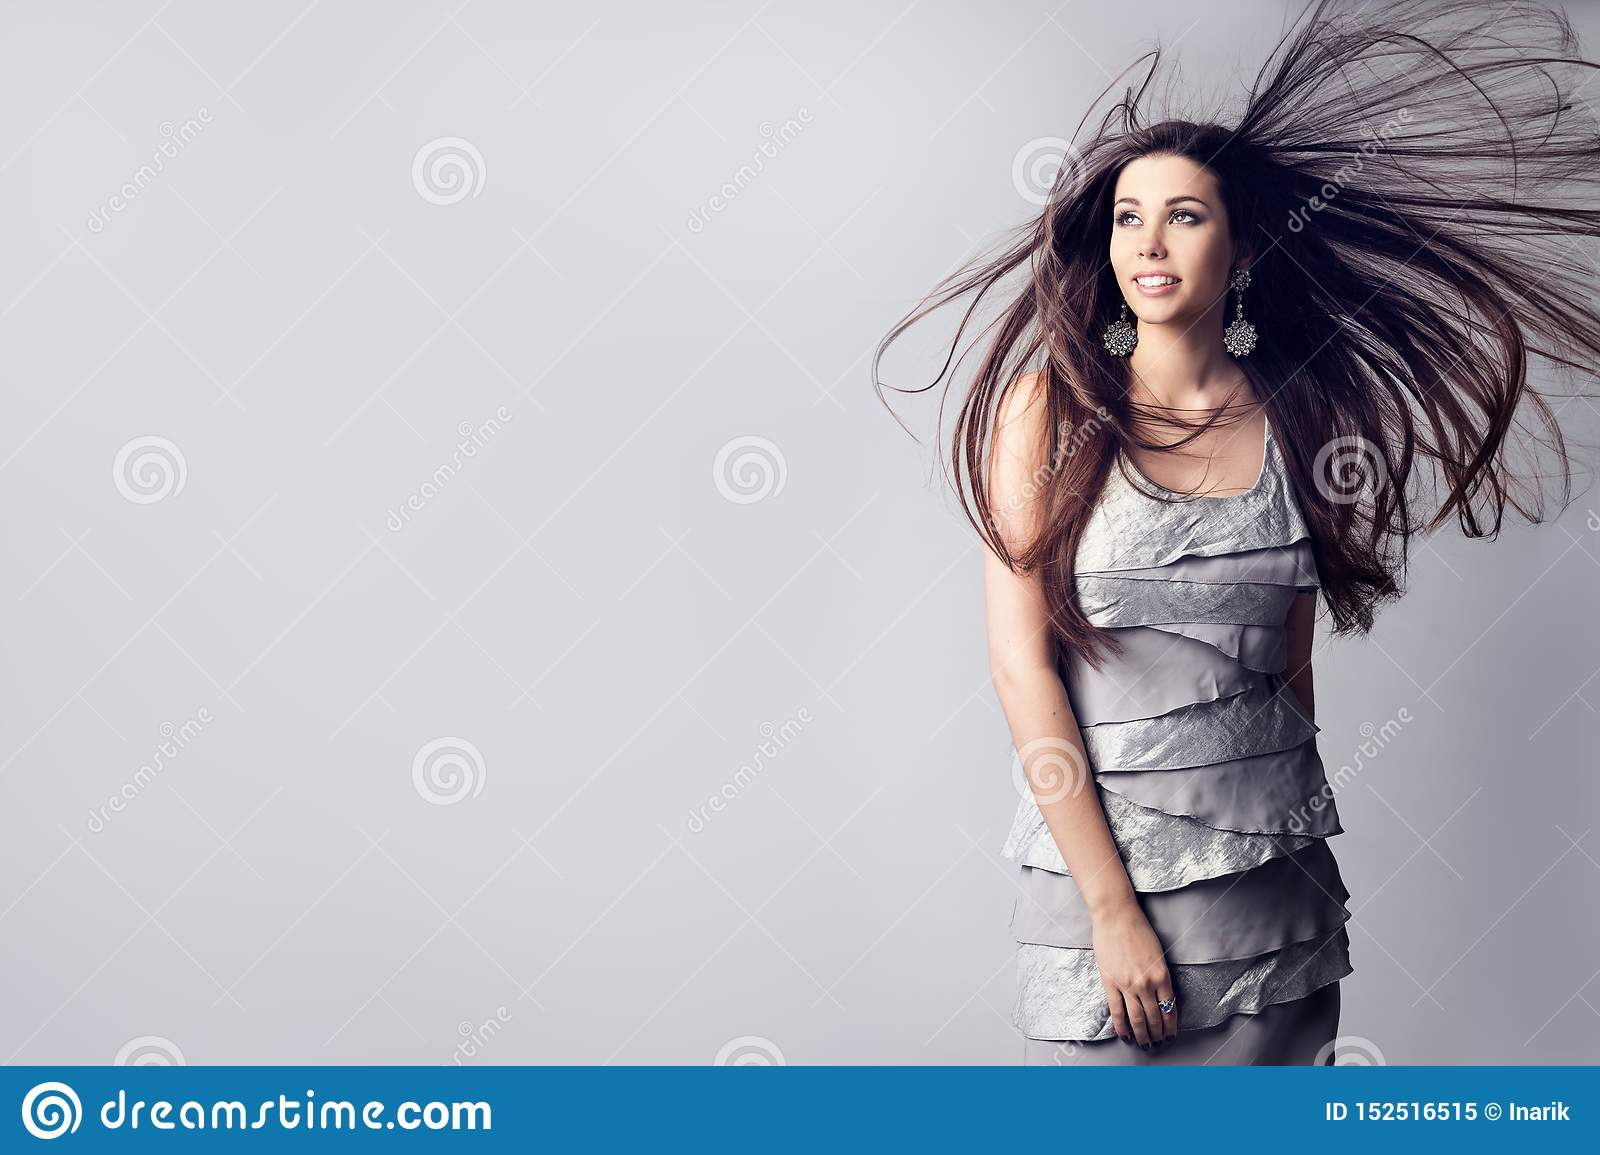 Fashion Model Long Hair Fluttering on Wind, Beautiful Woman Hairstyle Studio Portrait on White